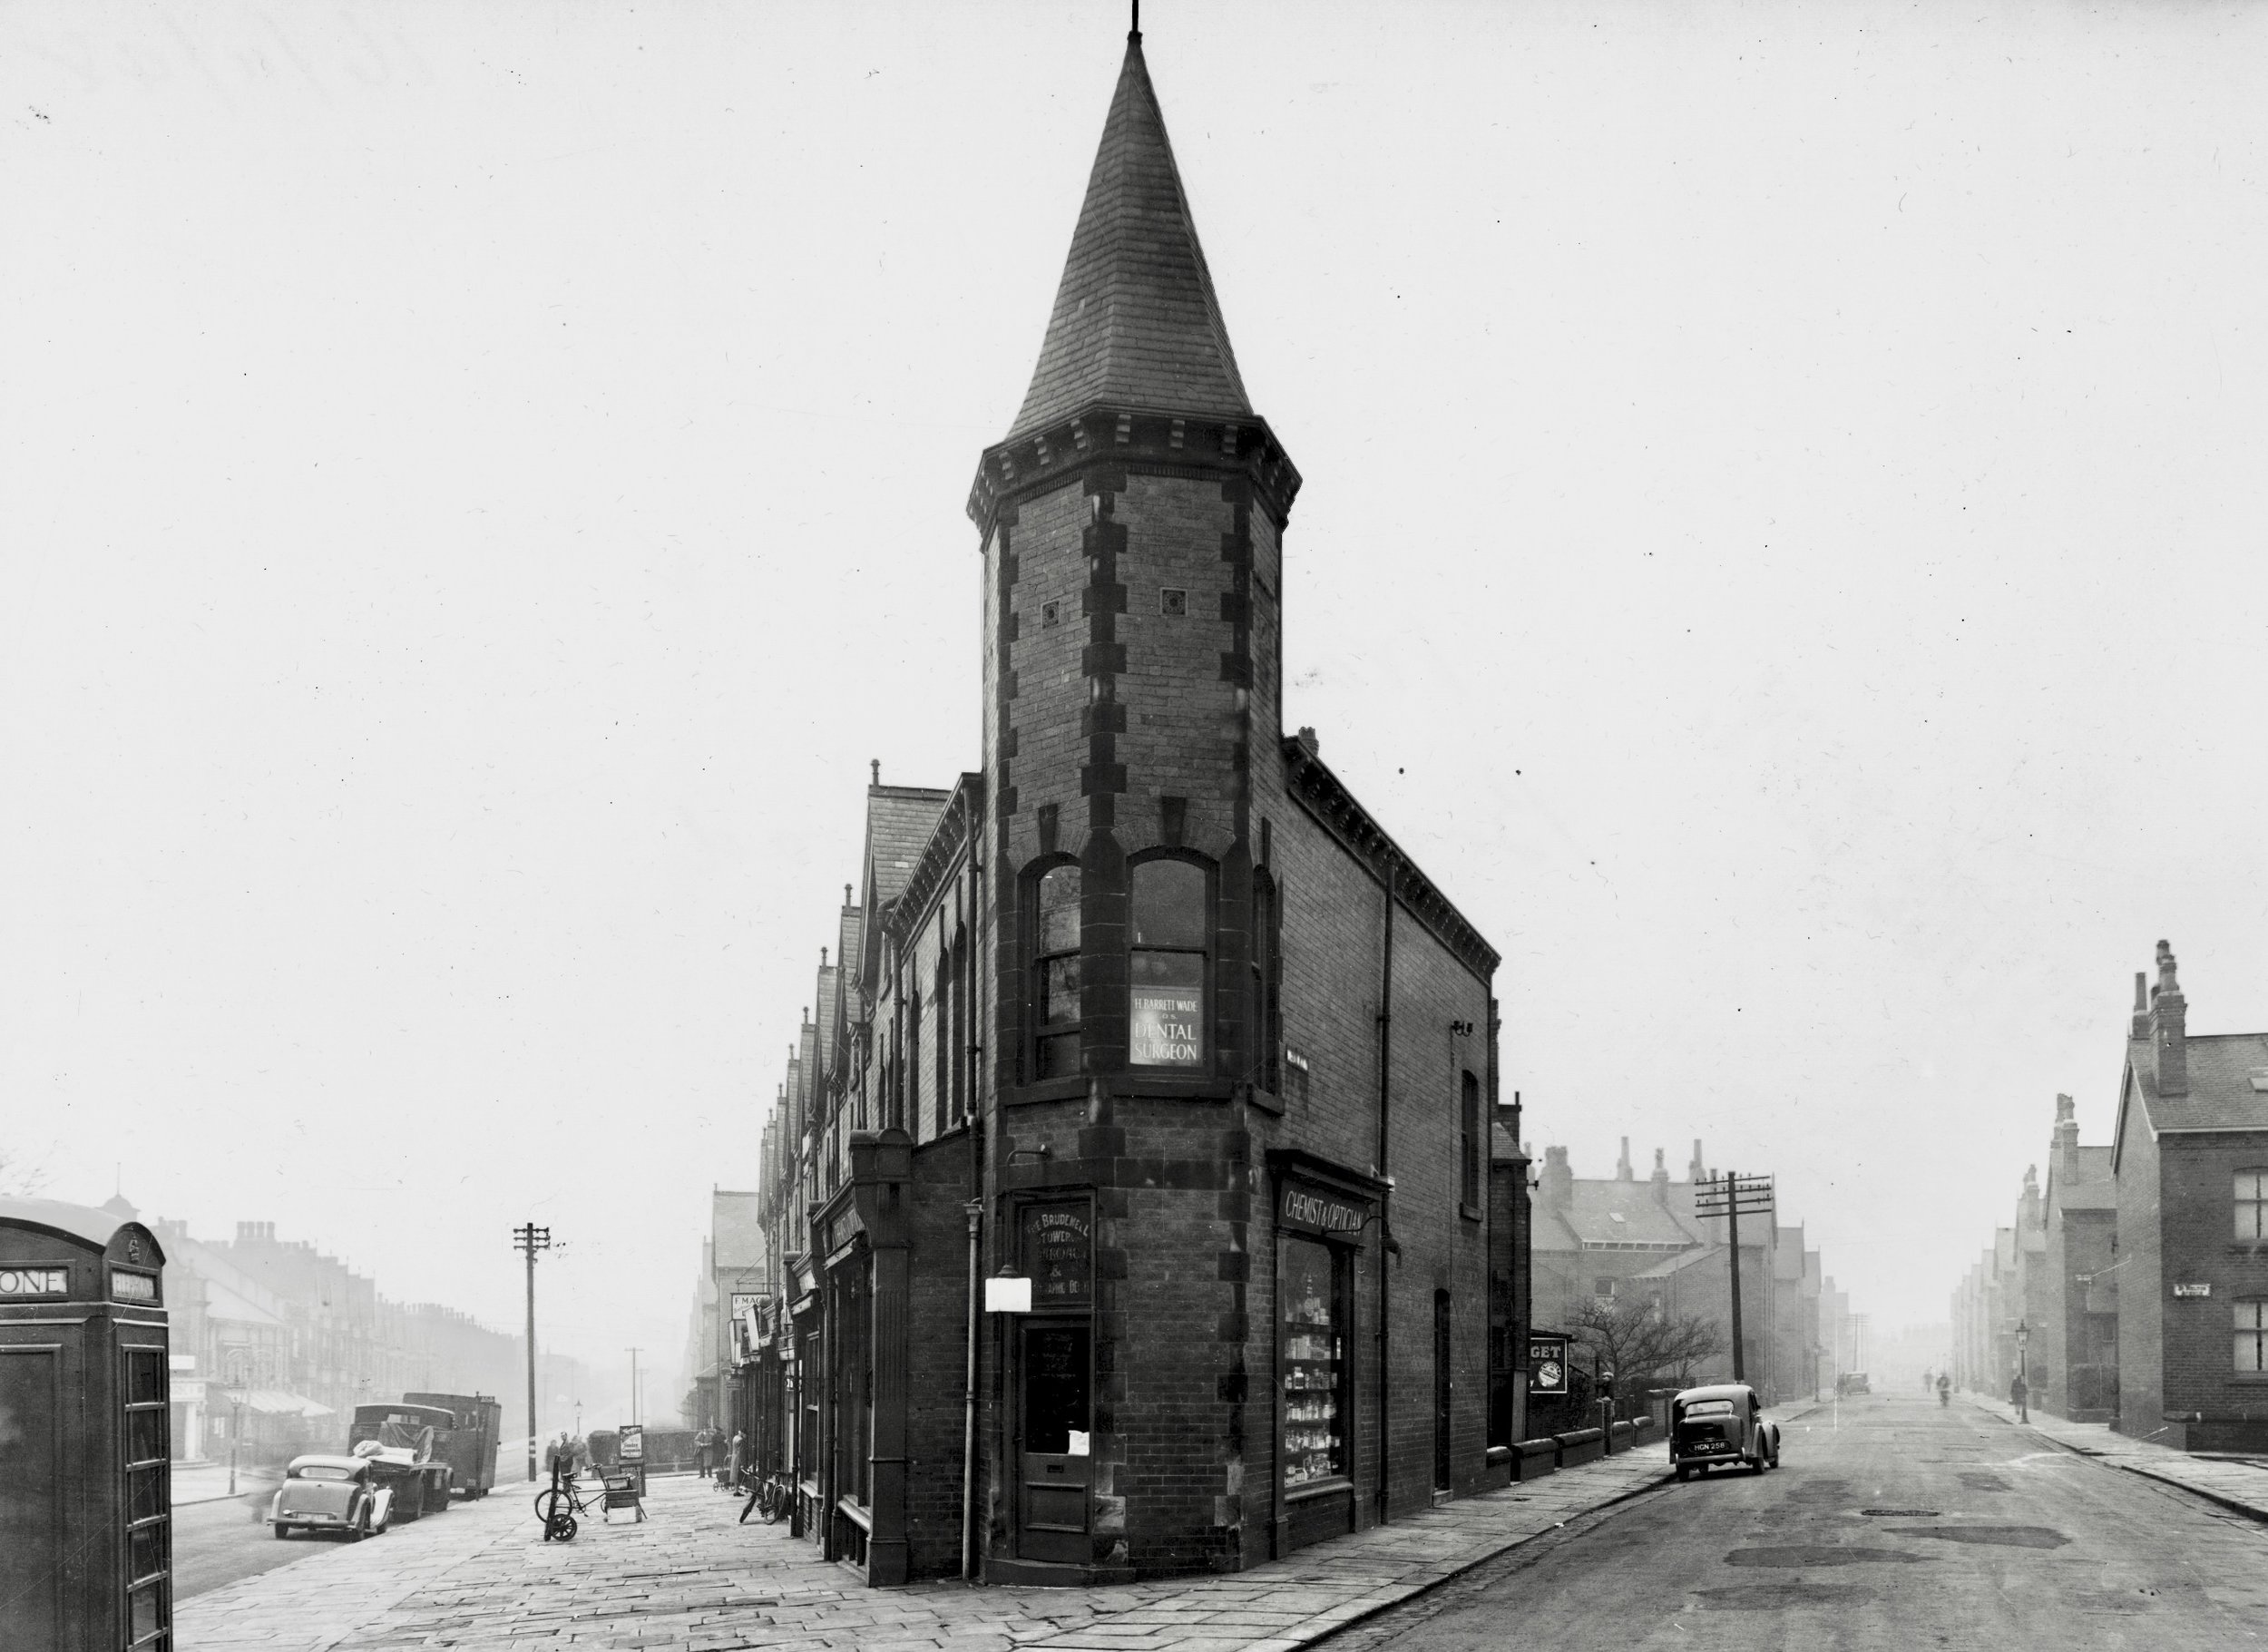 Brudenell Road and Welton Road